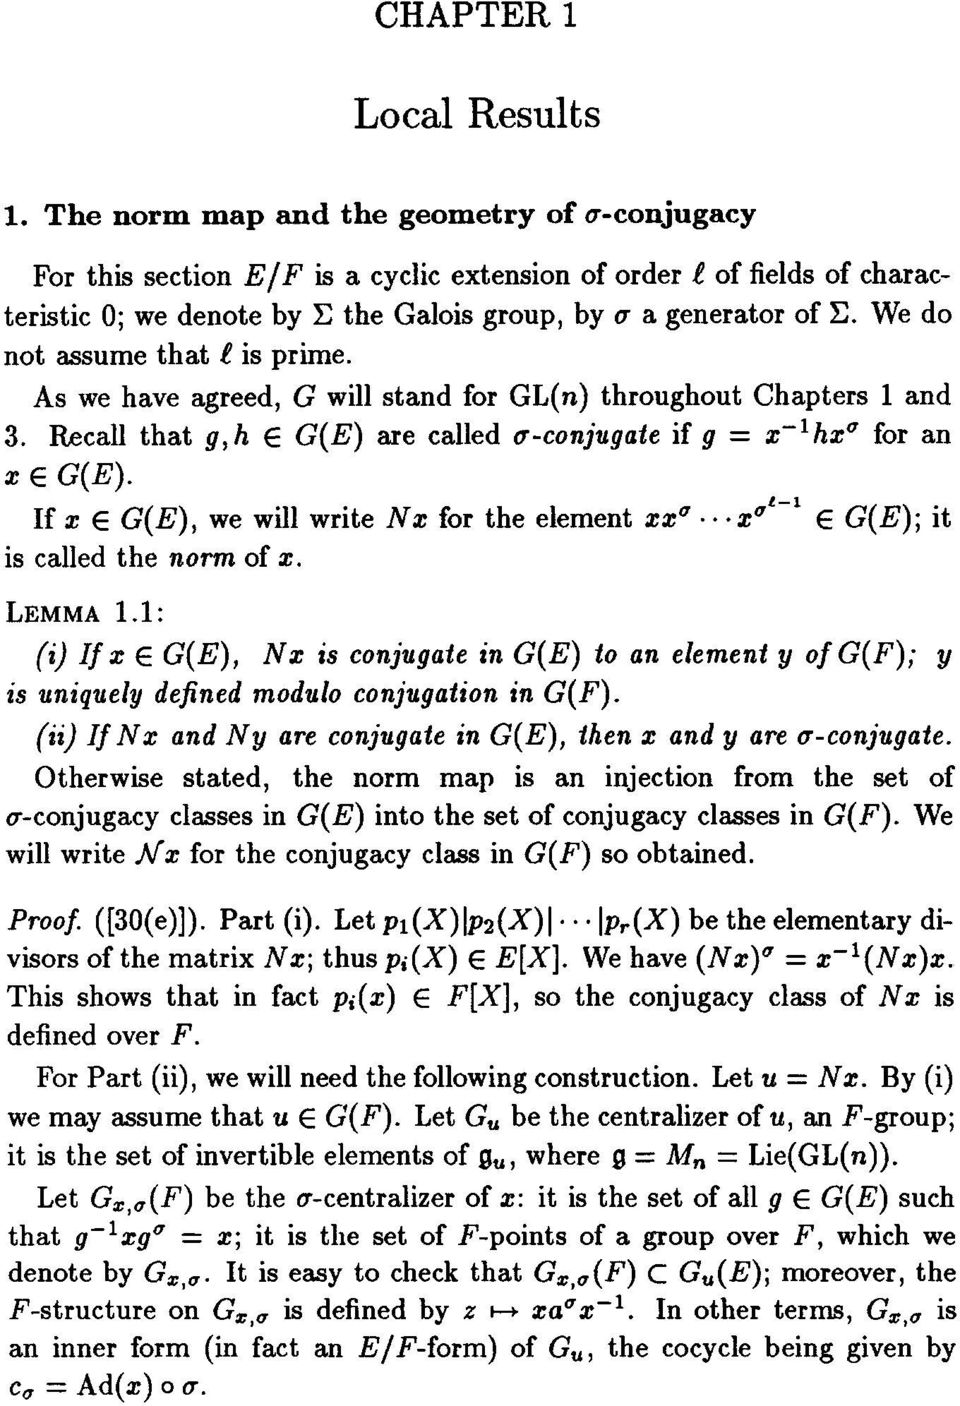 We do not assume that e is prime. As we have agreed, G will stand for GL(n) throughout Chapters 1 and 3. Recall that g,h E G(E) are called a-conjugate if g = x-lhzx for an x E G(E).